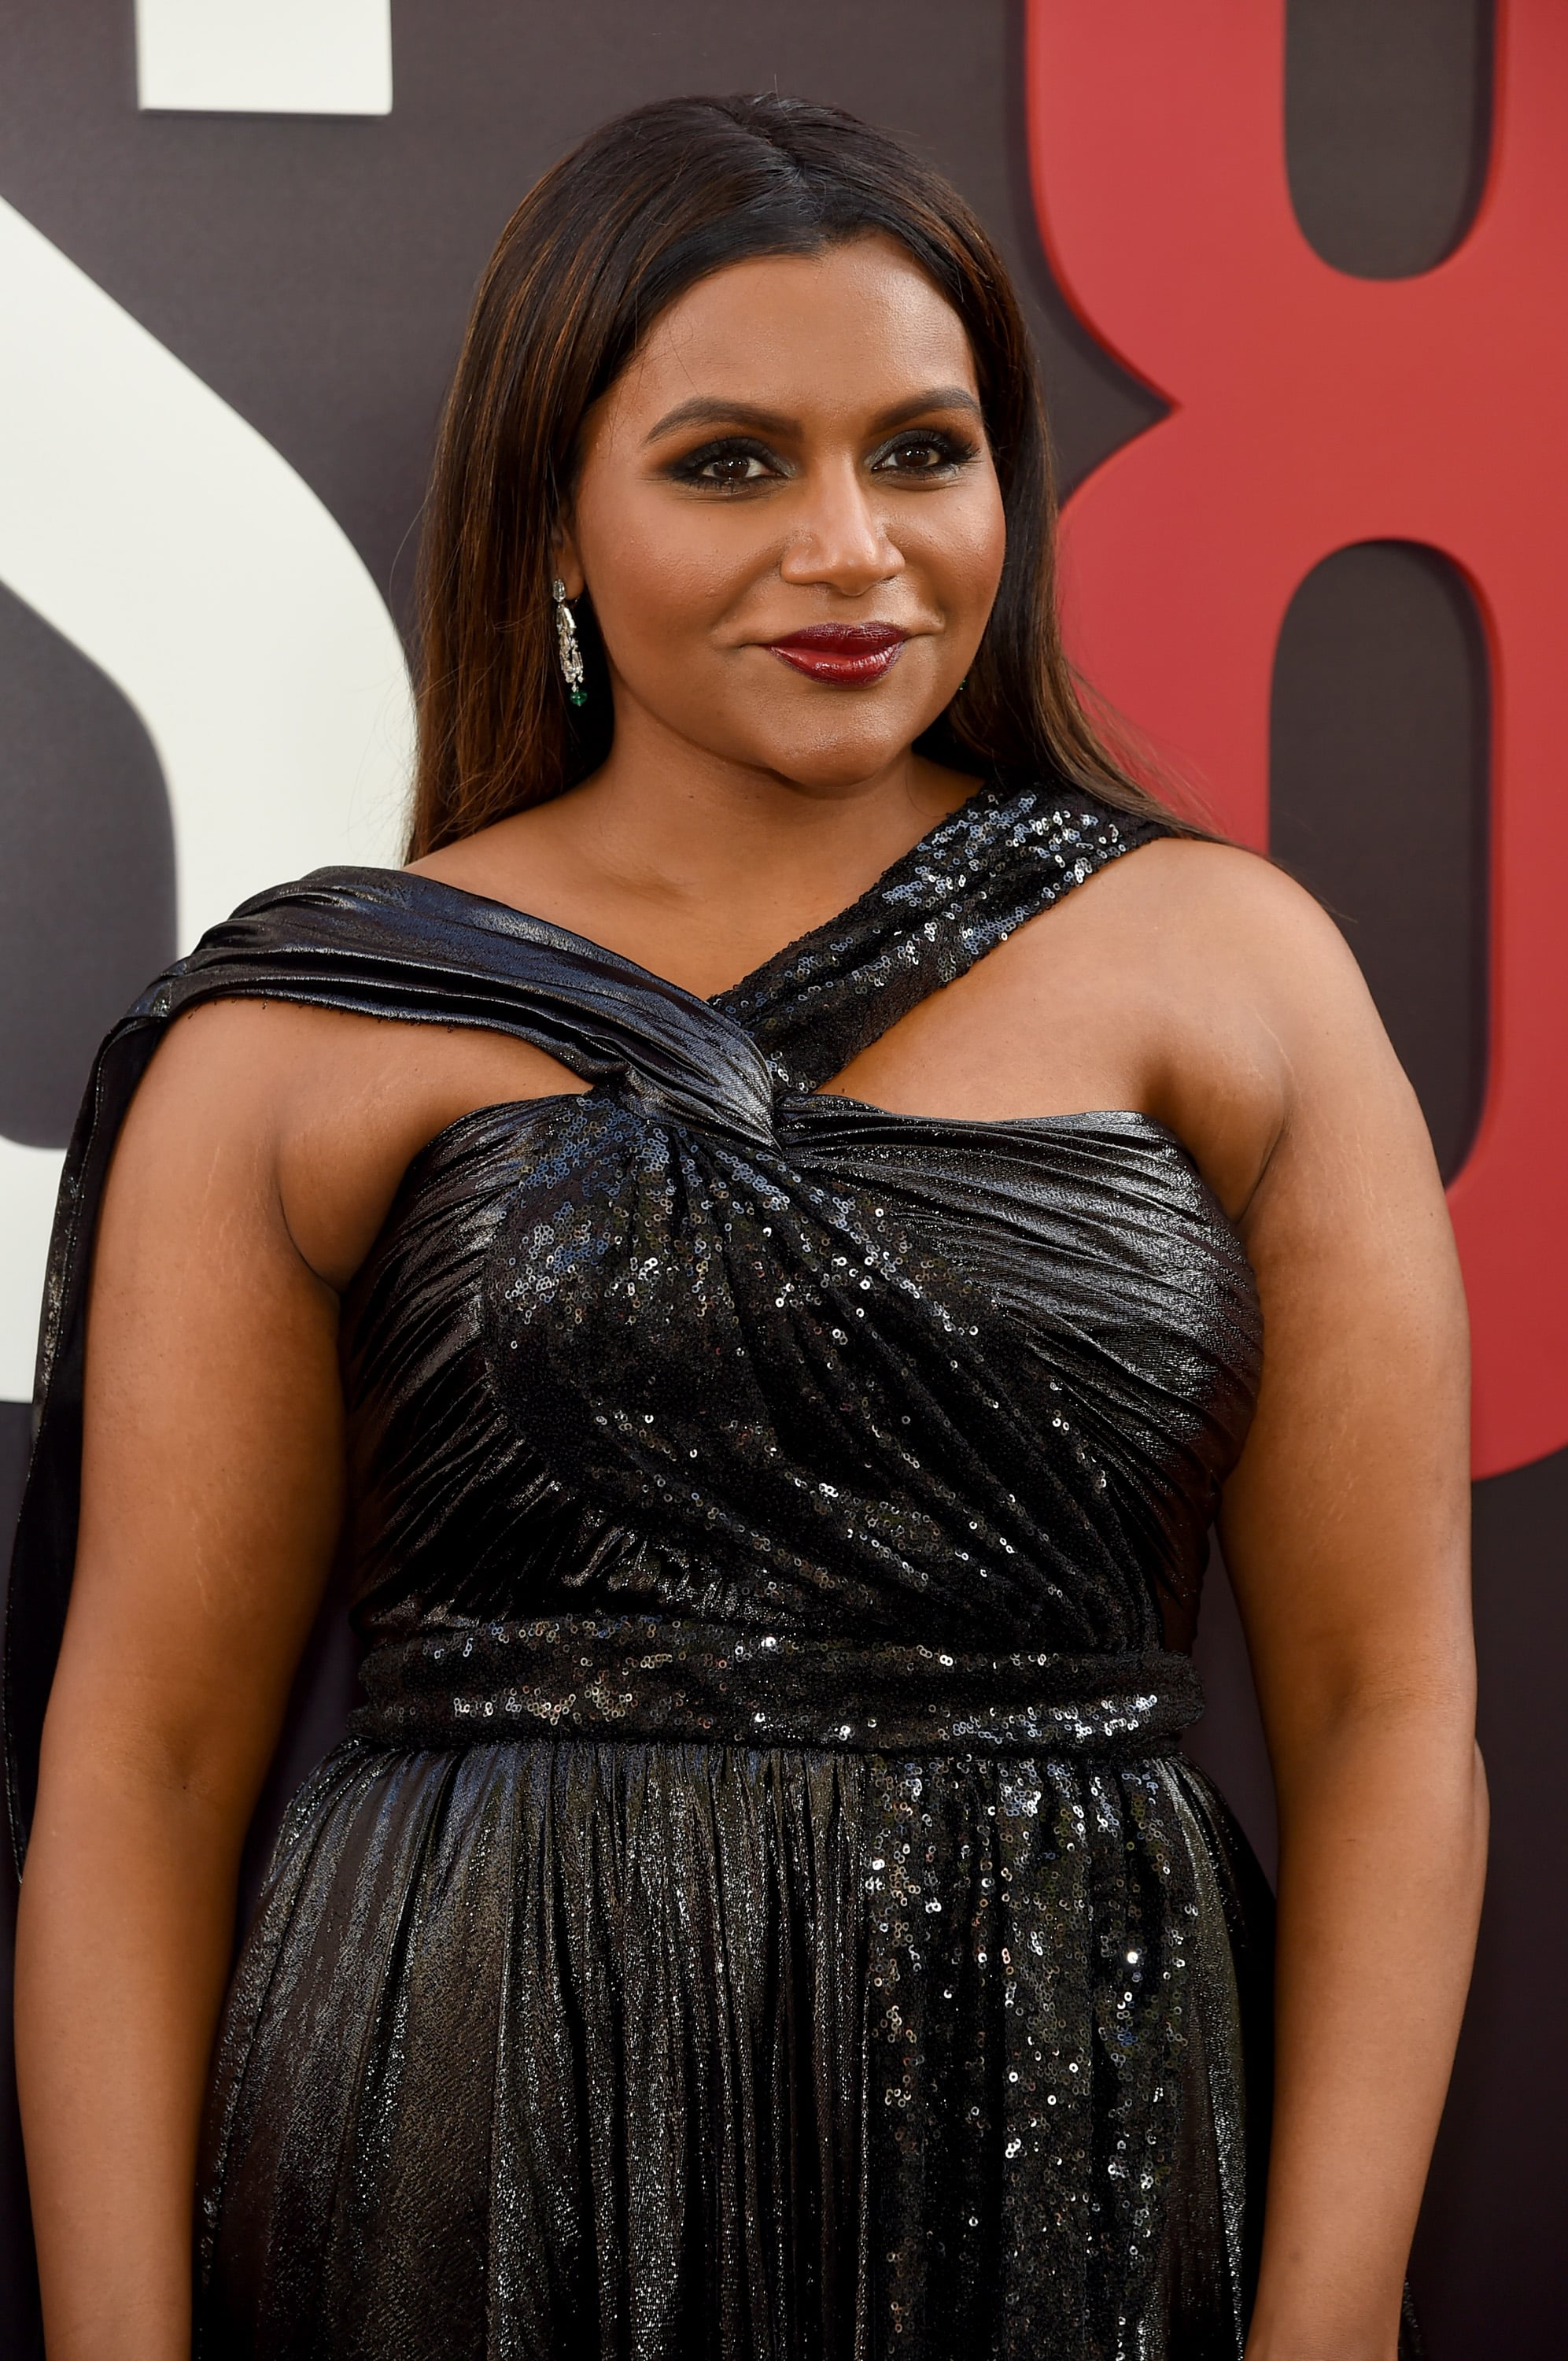 Mindy Kaling The Ocean S 8 Cast Cannot Stop Fangirling Over Rihanna And Honestly Can You Blame Them Popsugar Celebrity Photo 5